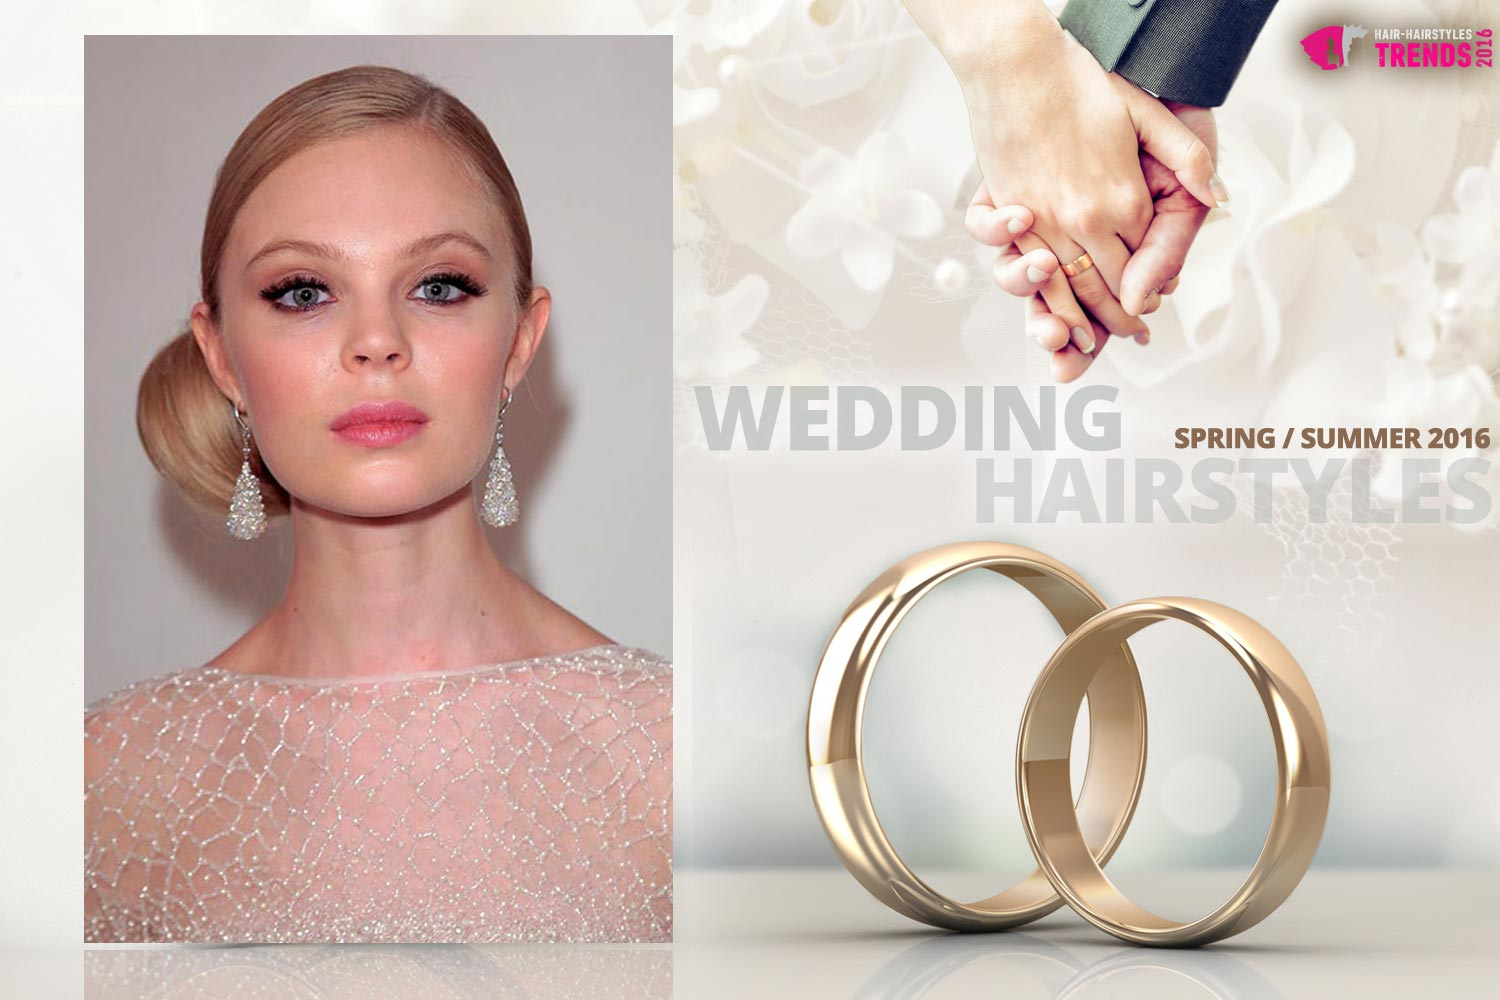 Wedding hairstyles Spring/Summer 2016 from the catwalks | HAIR ...